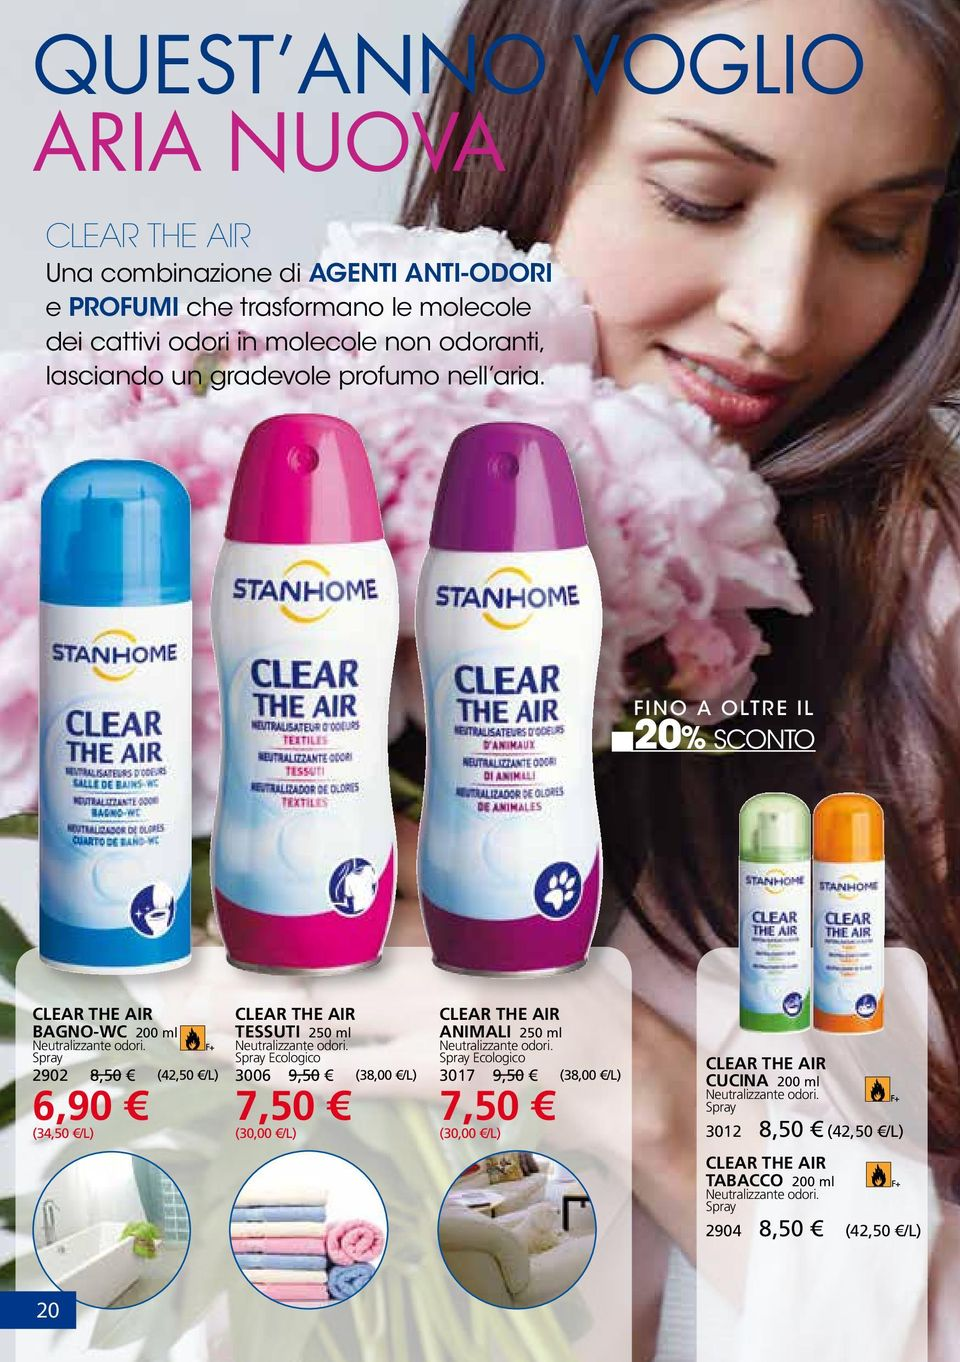 Spray 2902 8,50 (42,50 /L) 6,90 (34,50 /L) Clear The Air TESSUTI 250 ml Neutralizzante odori.